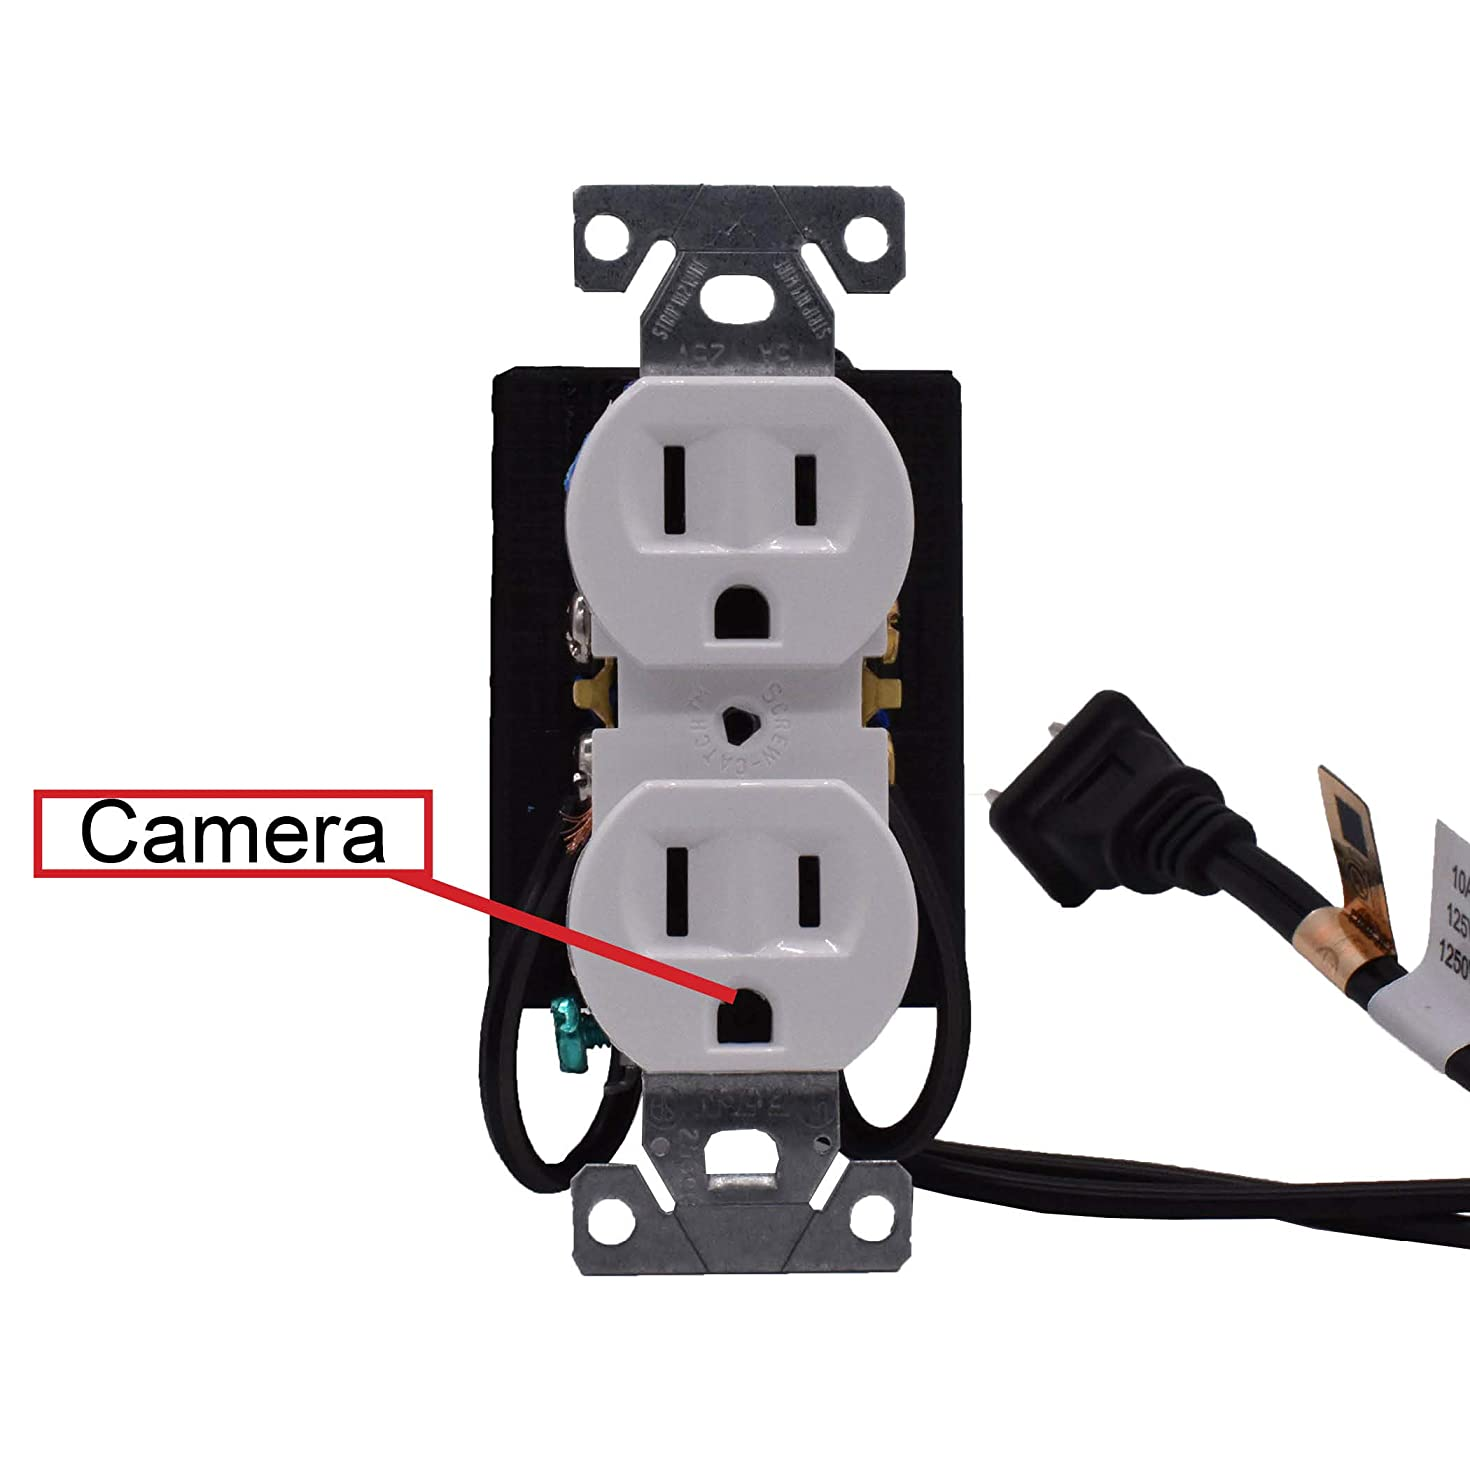 Minigadgets Functional Hardwired Receptacle Hidden Camera with WiFi and HD Video Free 128GB MicroSD Card